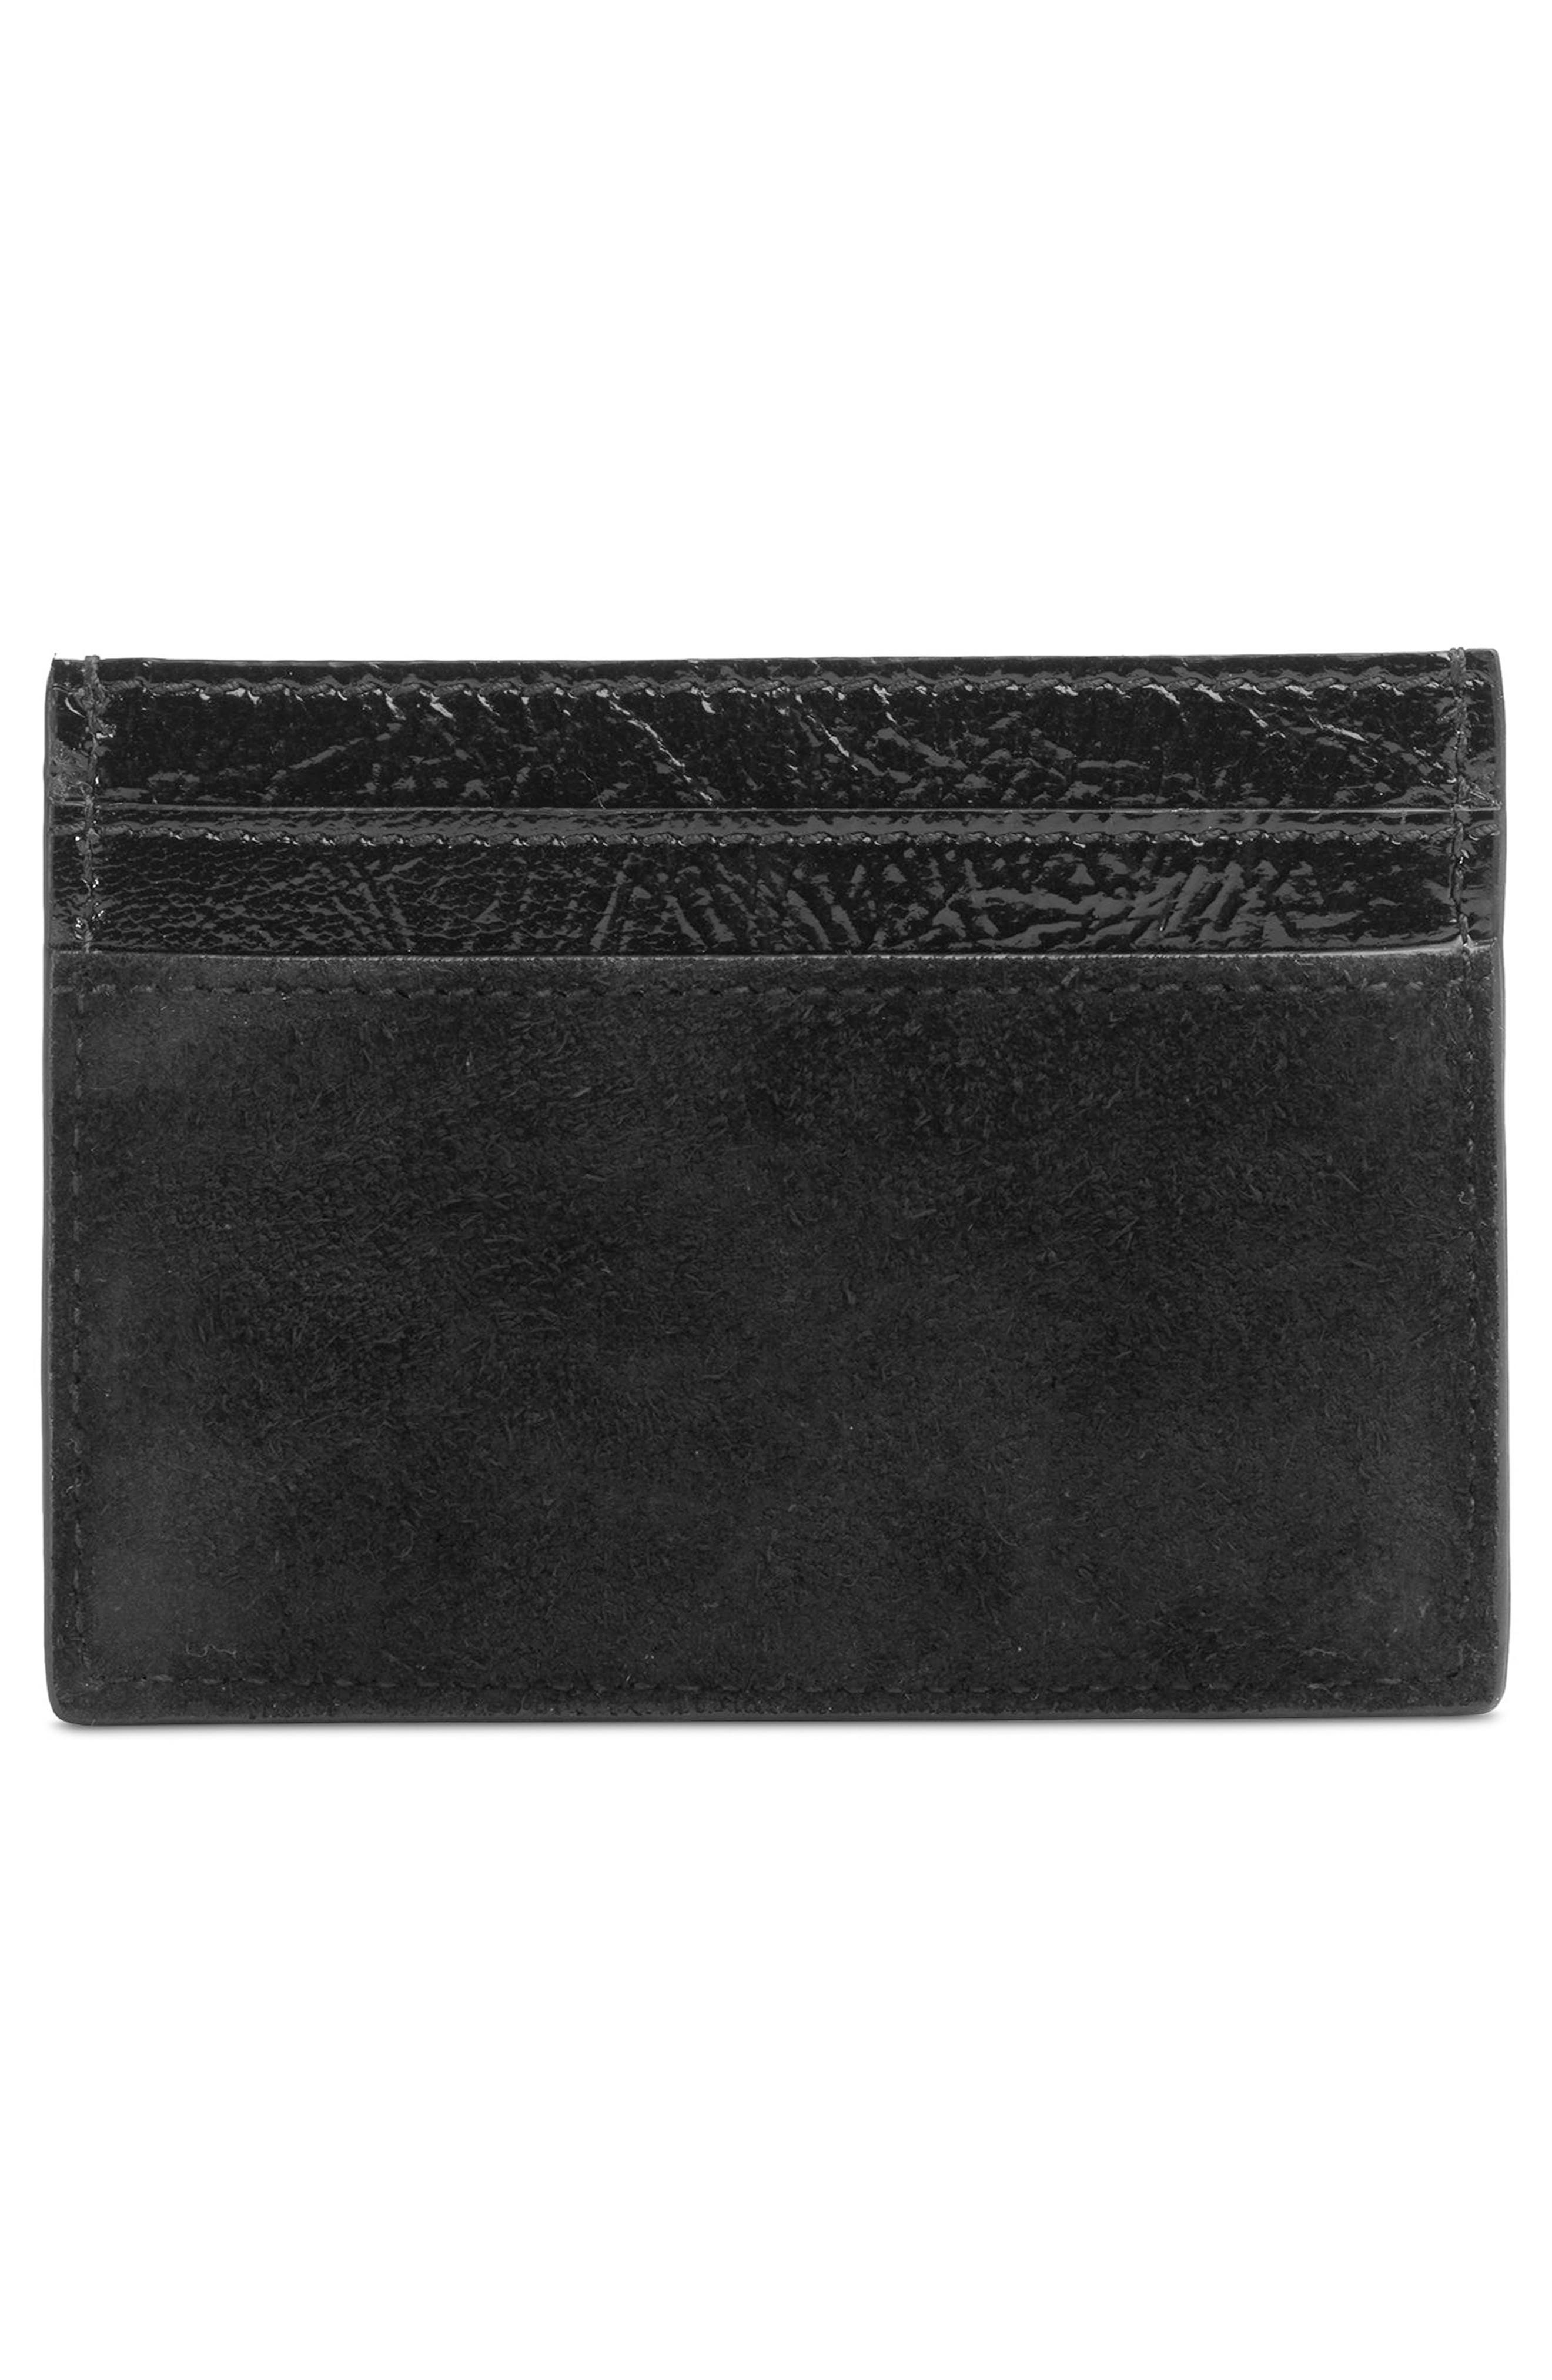 Ophidia Suede Card Case,                             Alternate thumbnail 3, color,                             NERO/ NERO/ VERT RED VERT